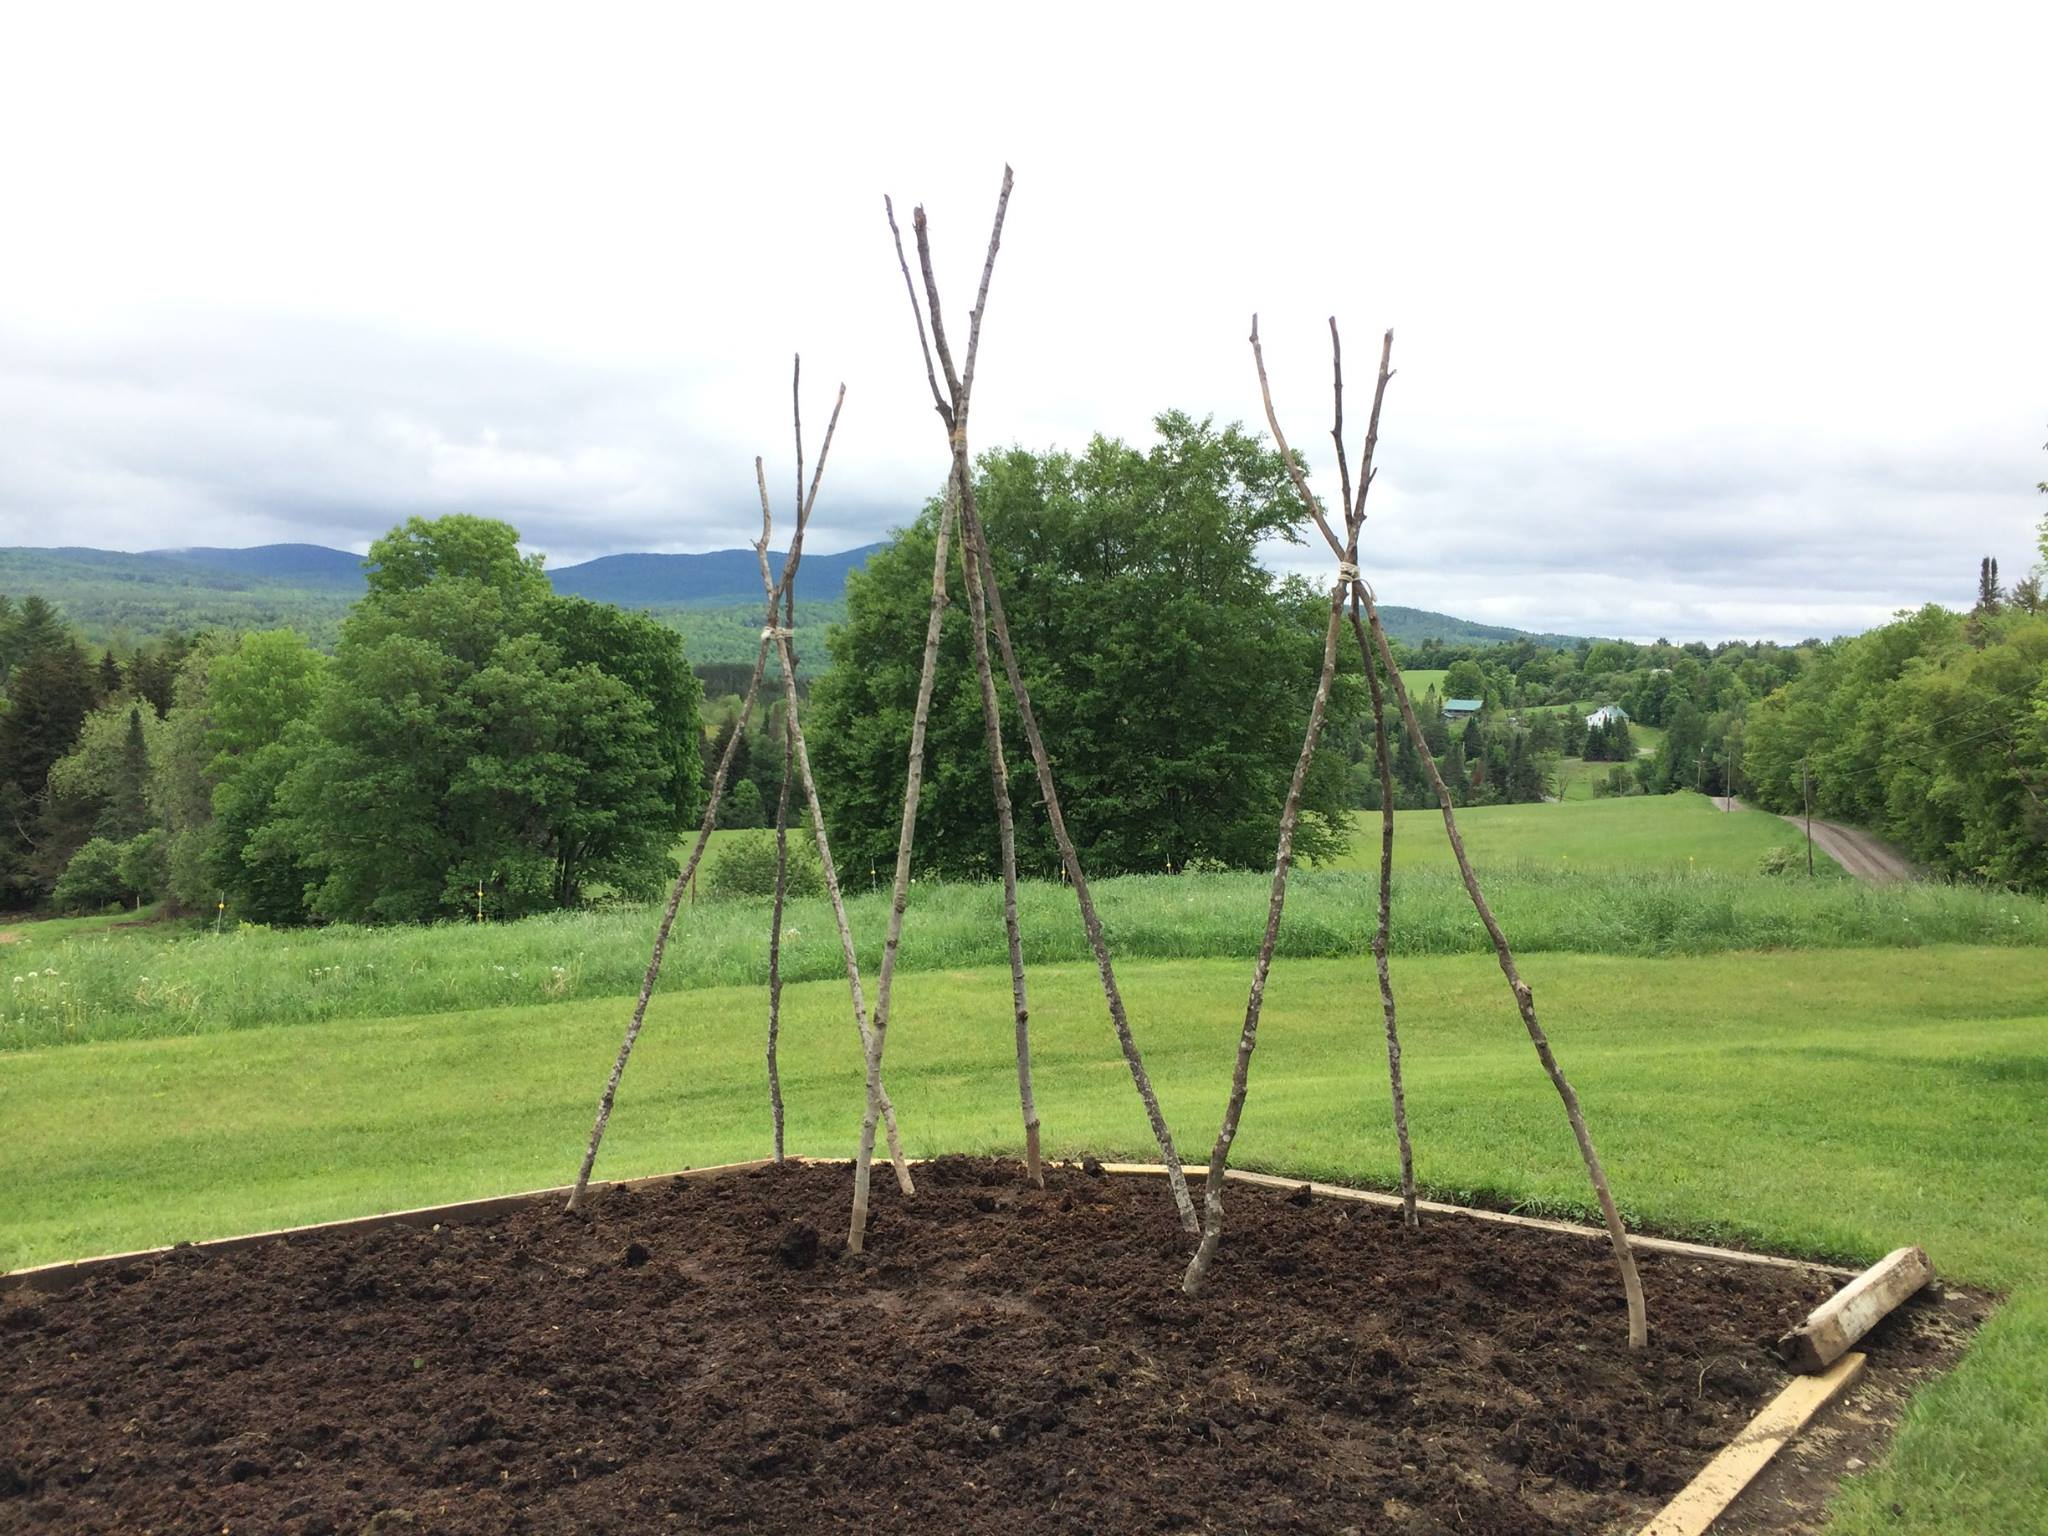 June 2, beds and tripods are ready. Tripods are maple saplings lashed at the top boy scout style, each pole ~10 feet long.